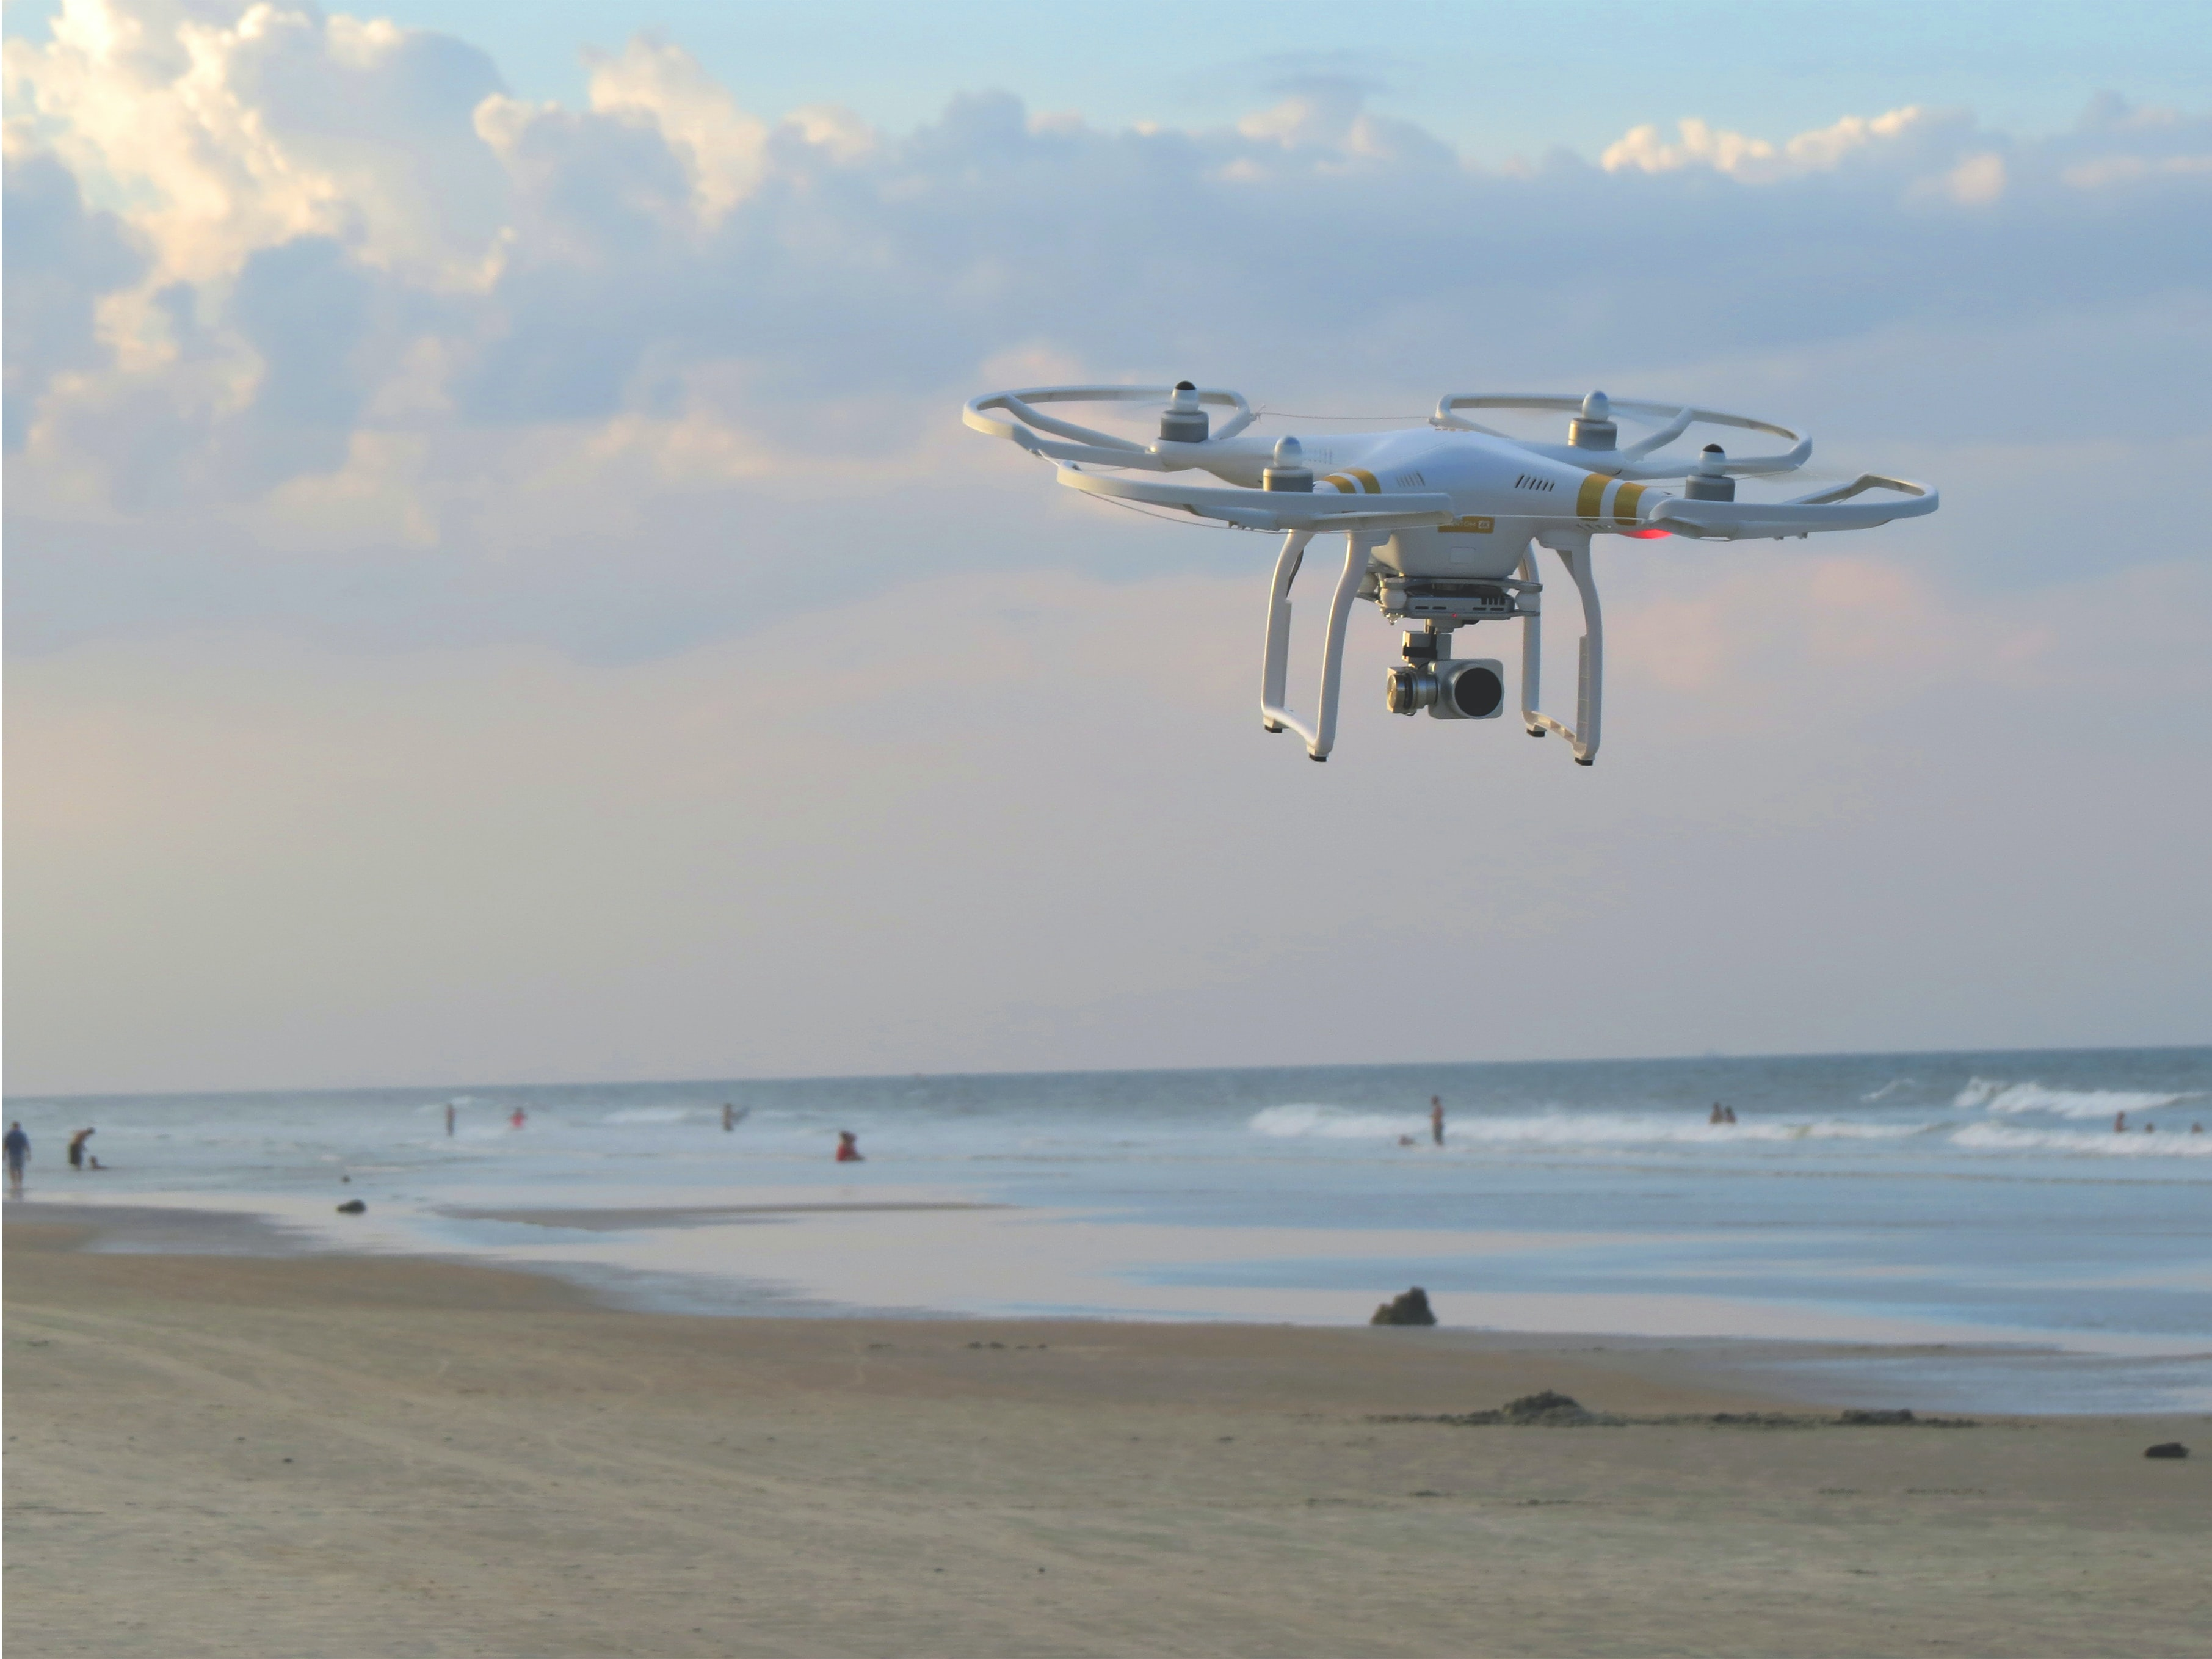 DJI 3 drone flying above the sand beach at New Smyrna Beach